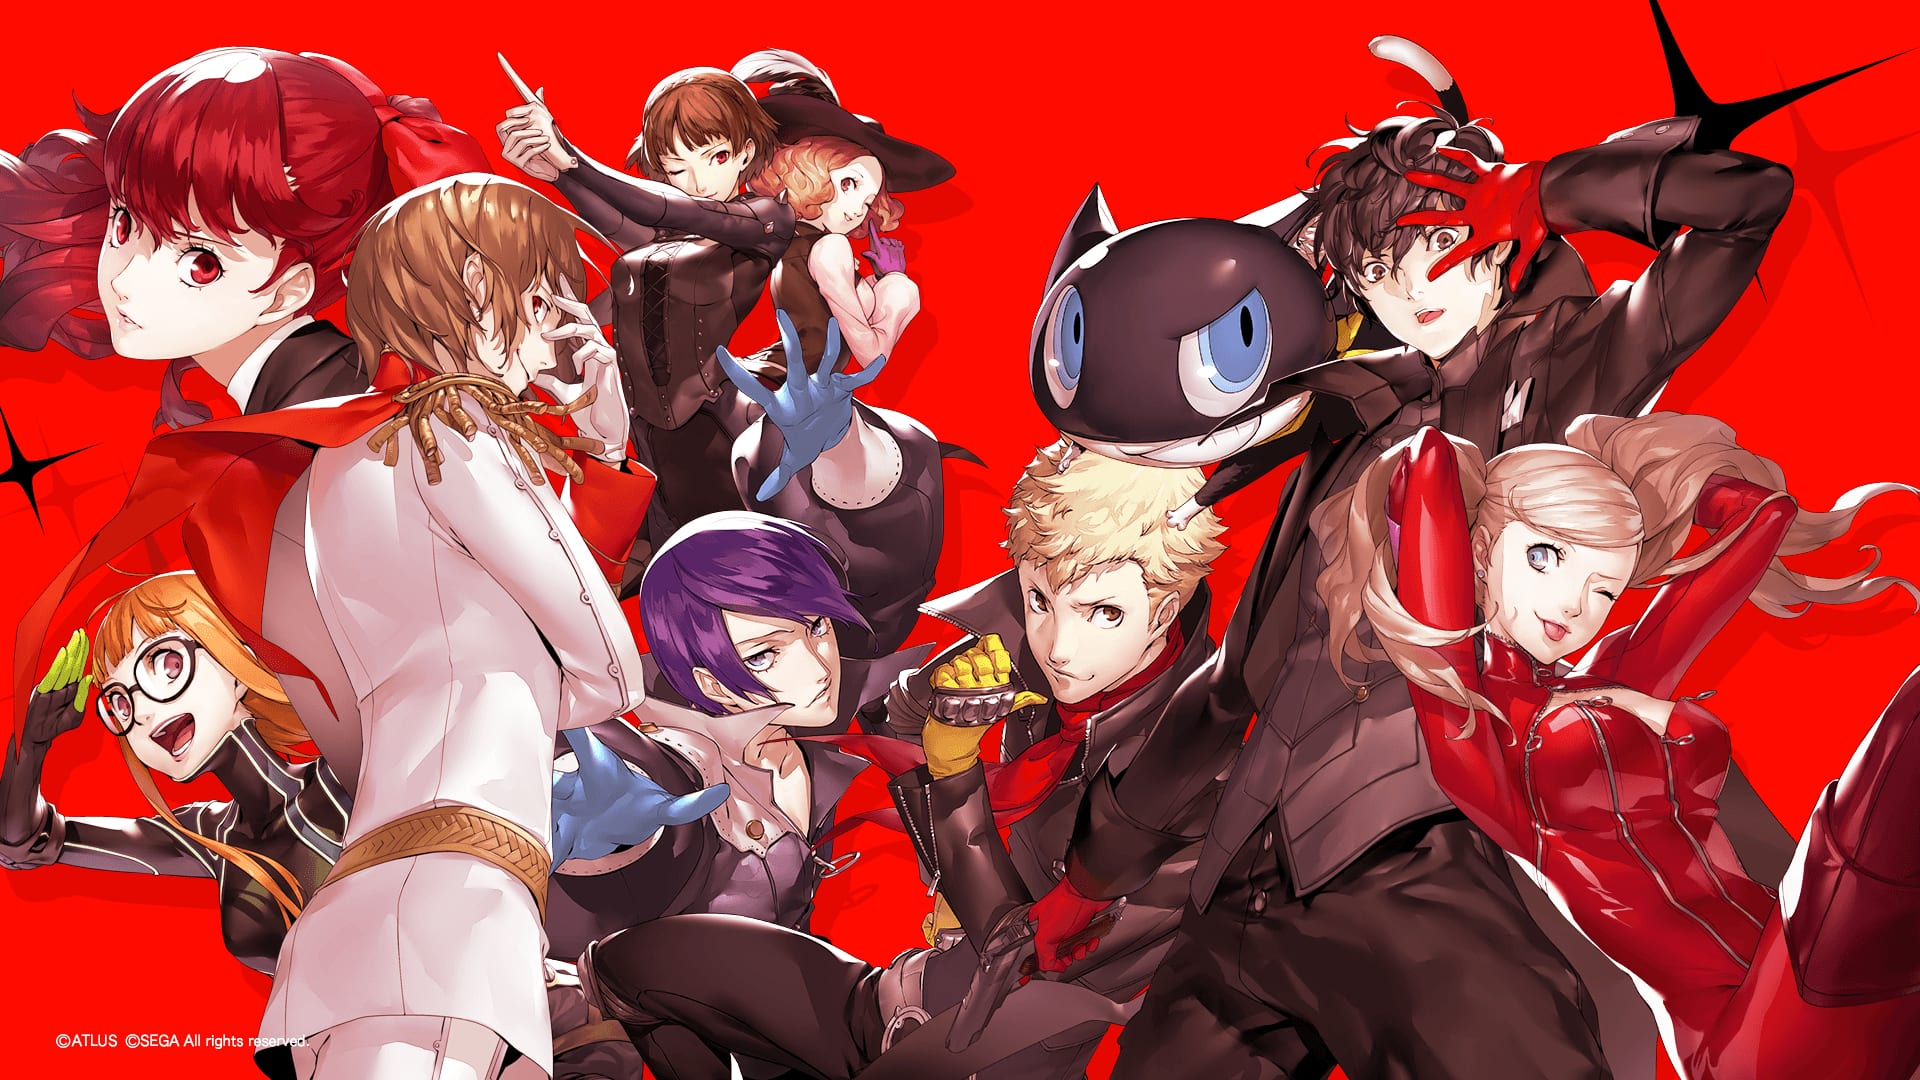 Persona 5 Wallpapers Group Persona 5 The Royal 2840823 Hd Wallpaper Backgrounds Download